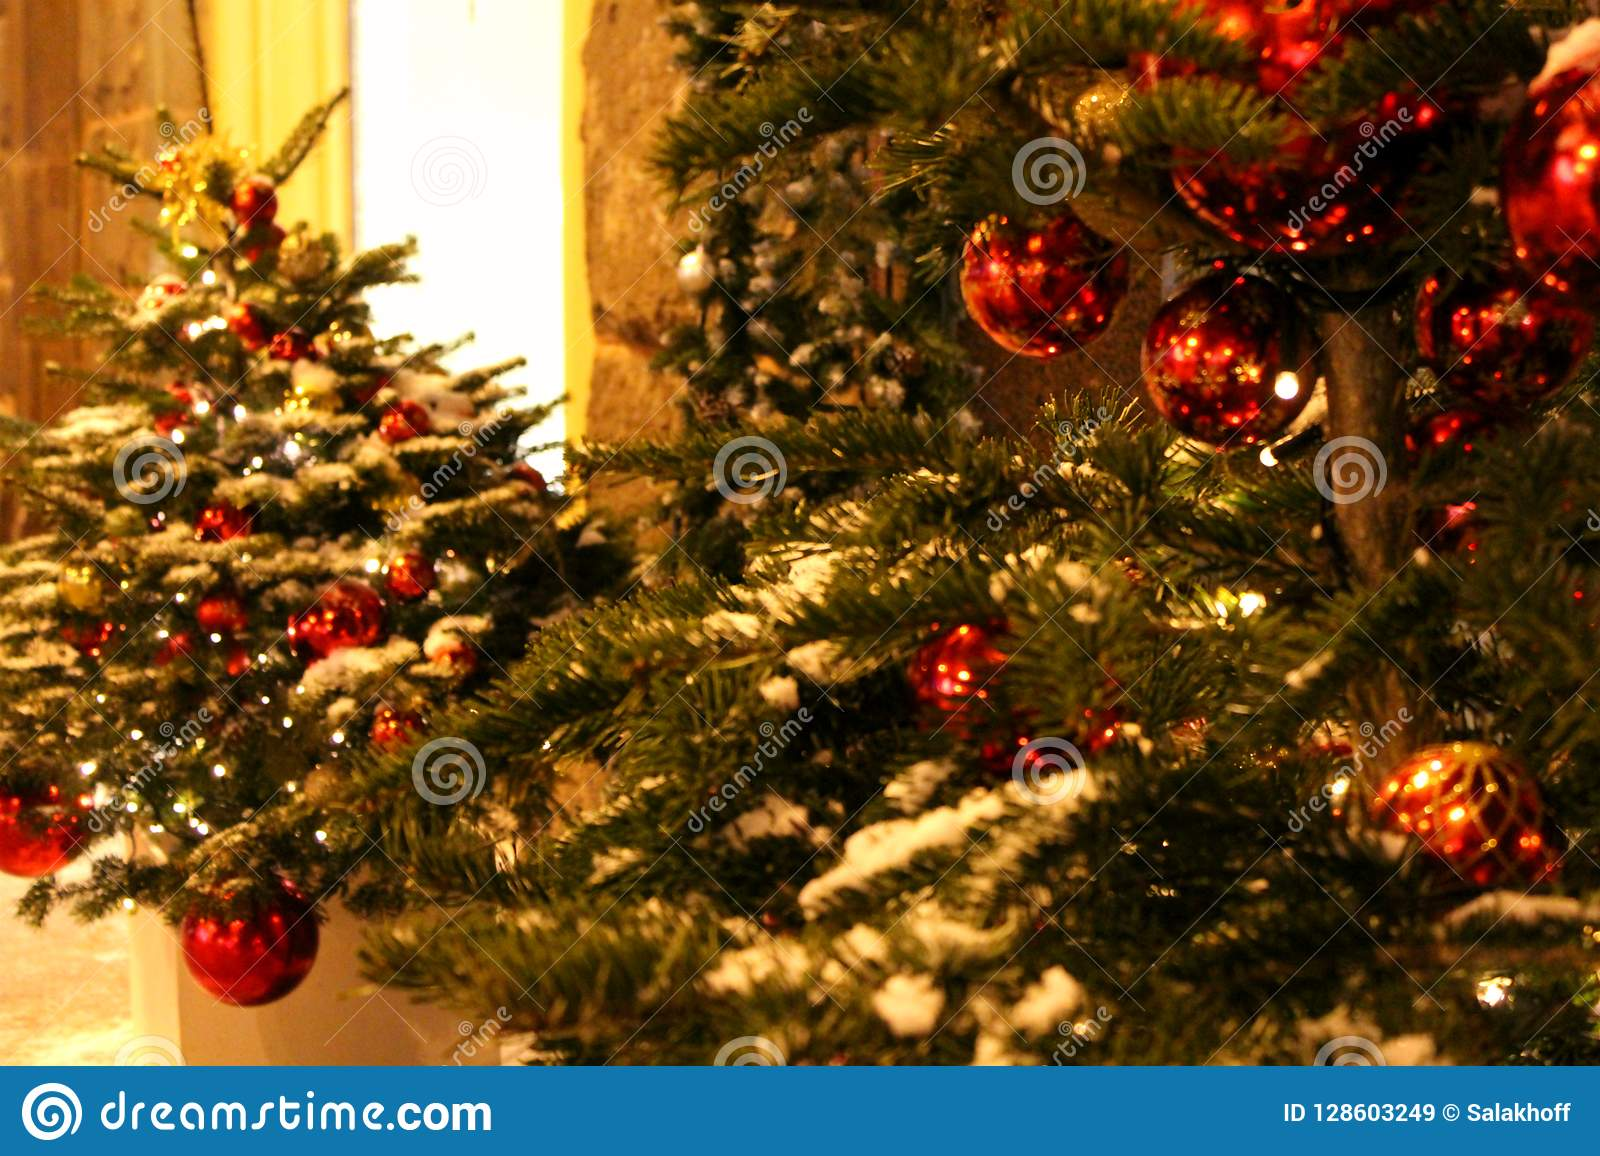 Christmas Decorations On The Christmas Tree In Red Colors In The Form Of Balls Close Up On The Street Or In The Yard Stock Image Image Of Form Design 128603249